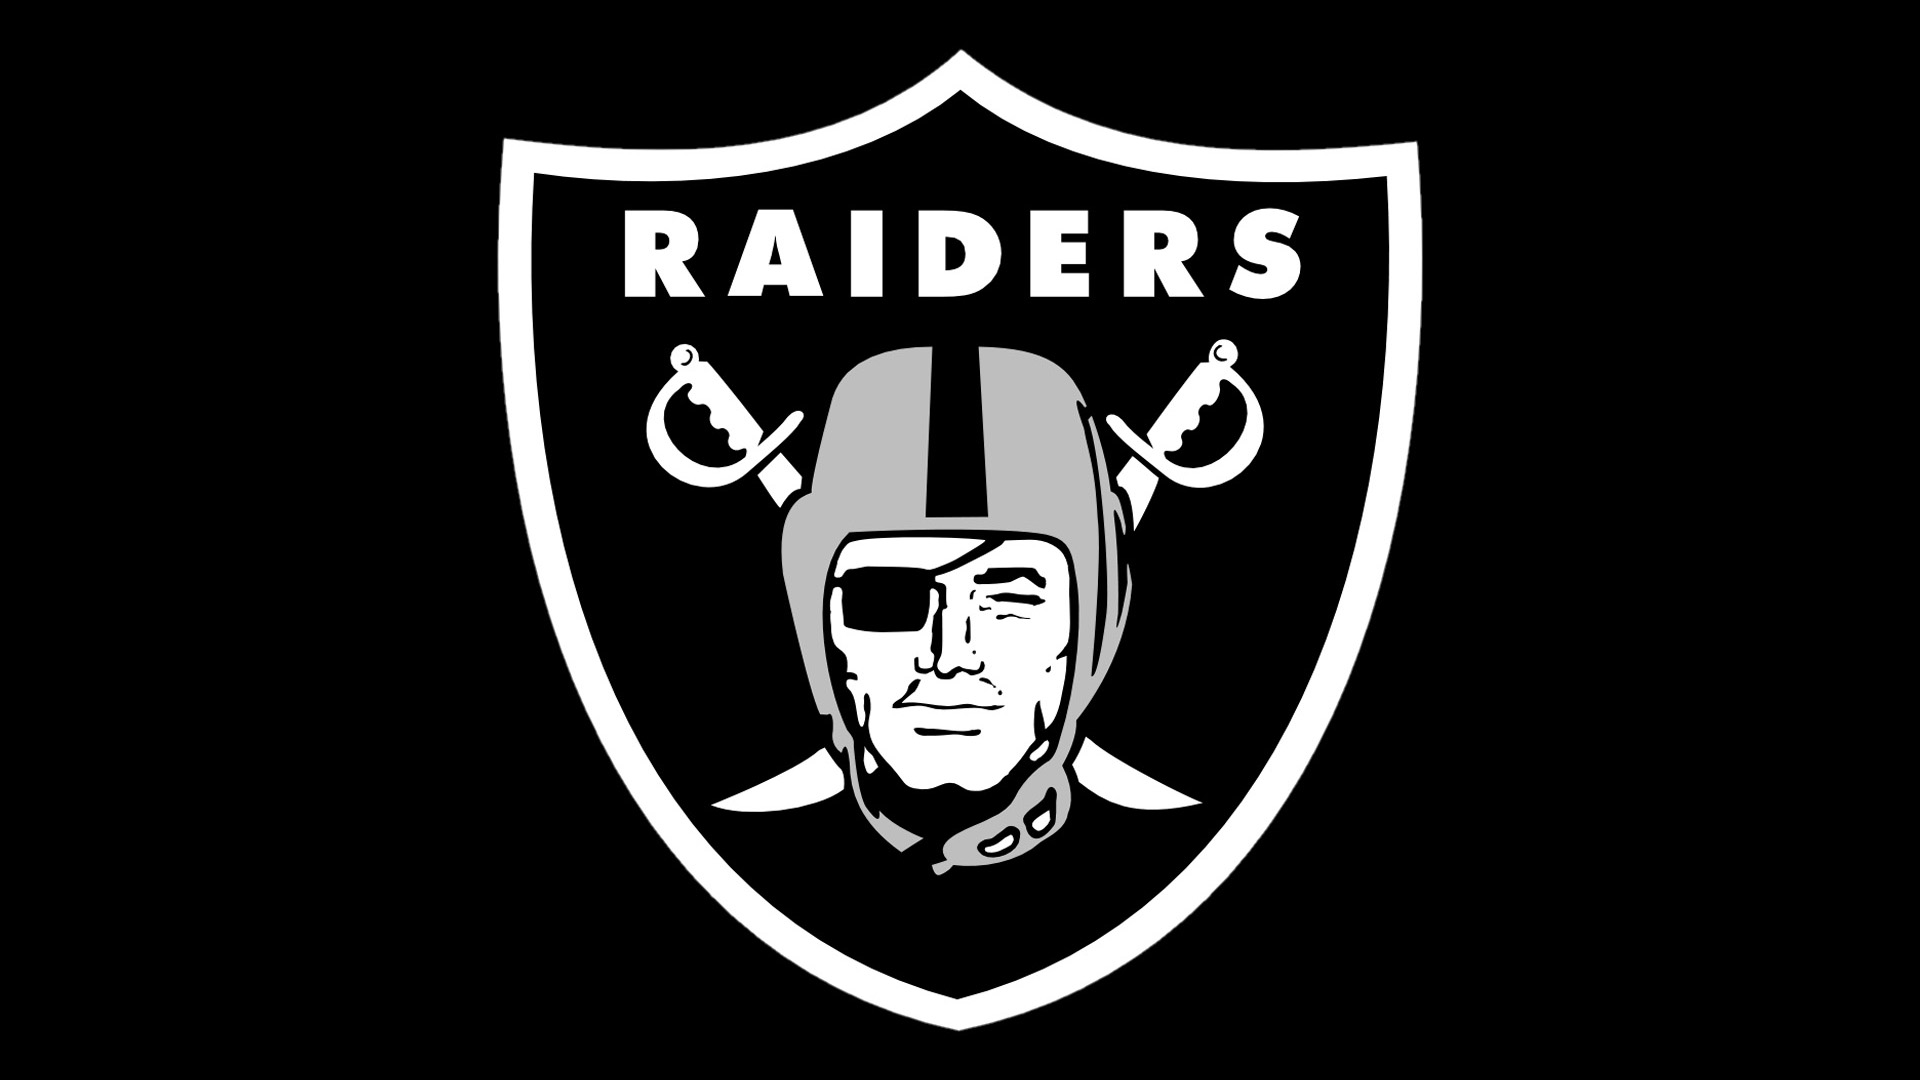 Oakland Raiders Logo wallpaper 1087